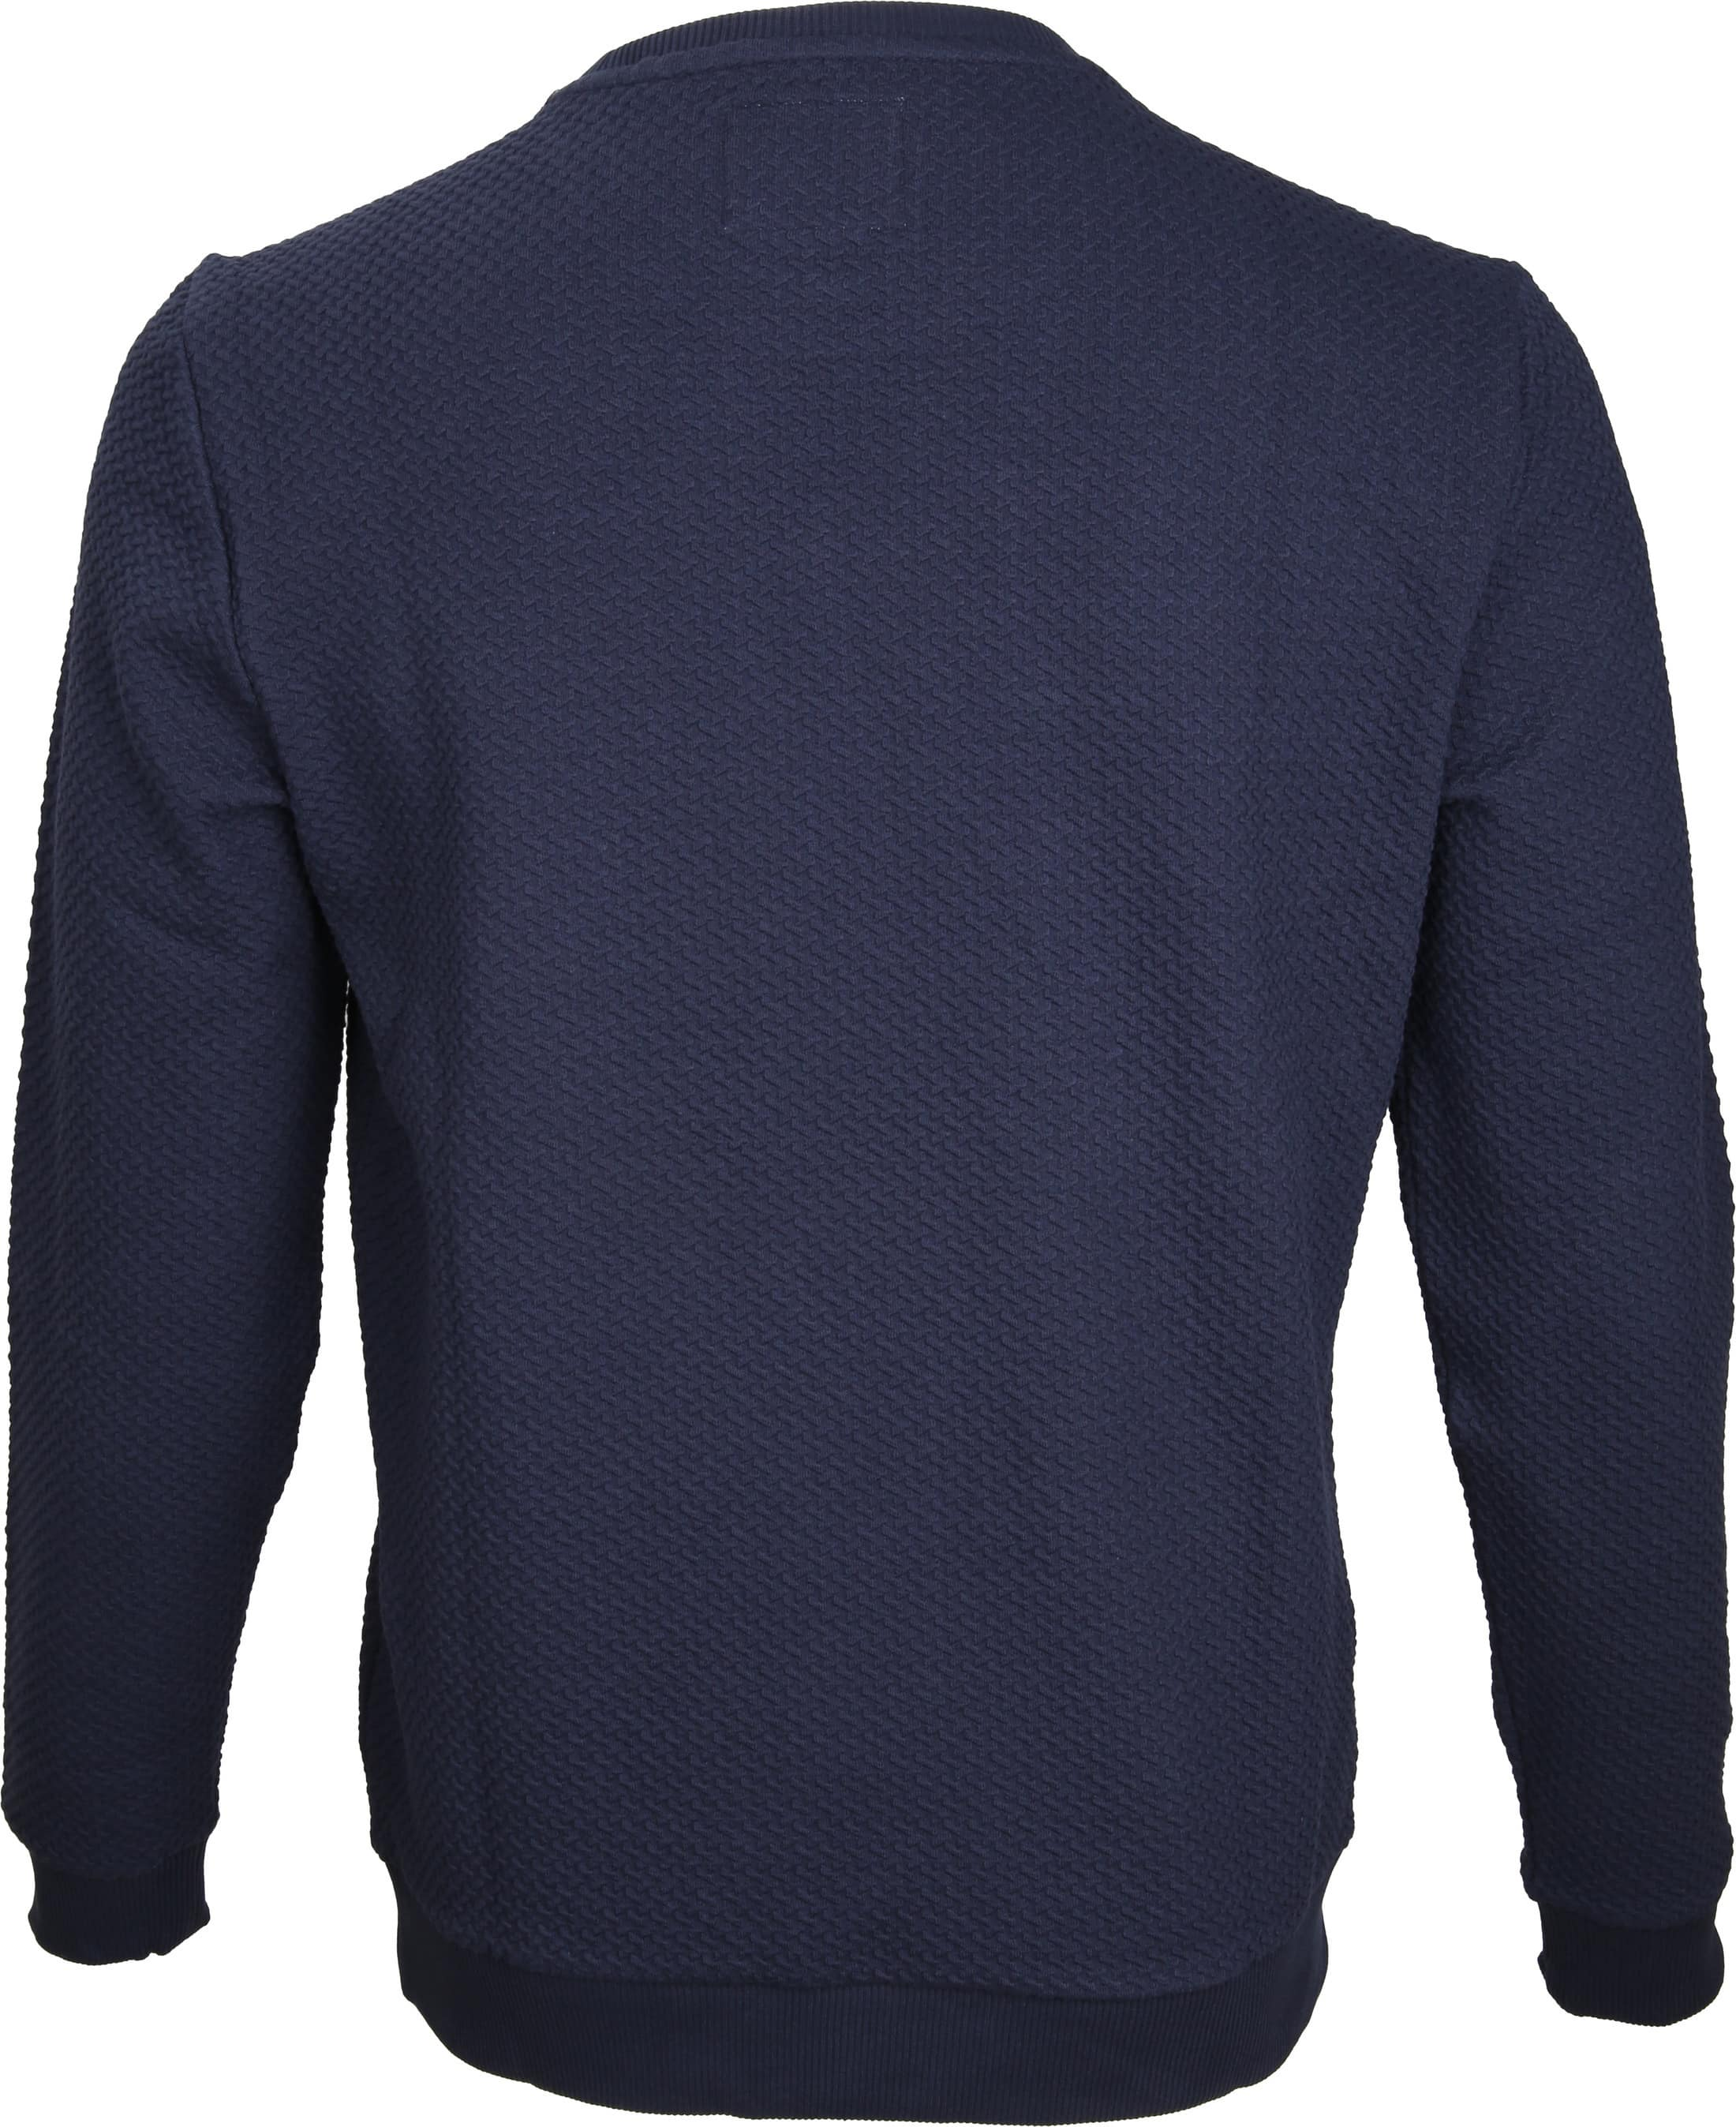 No-Excess Pullover Navy foto 3